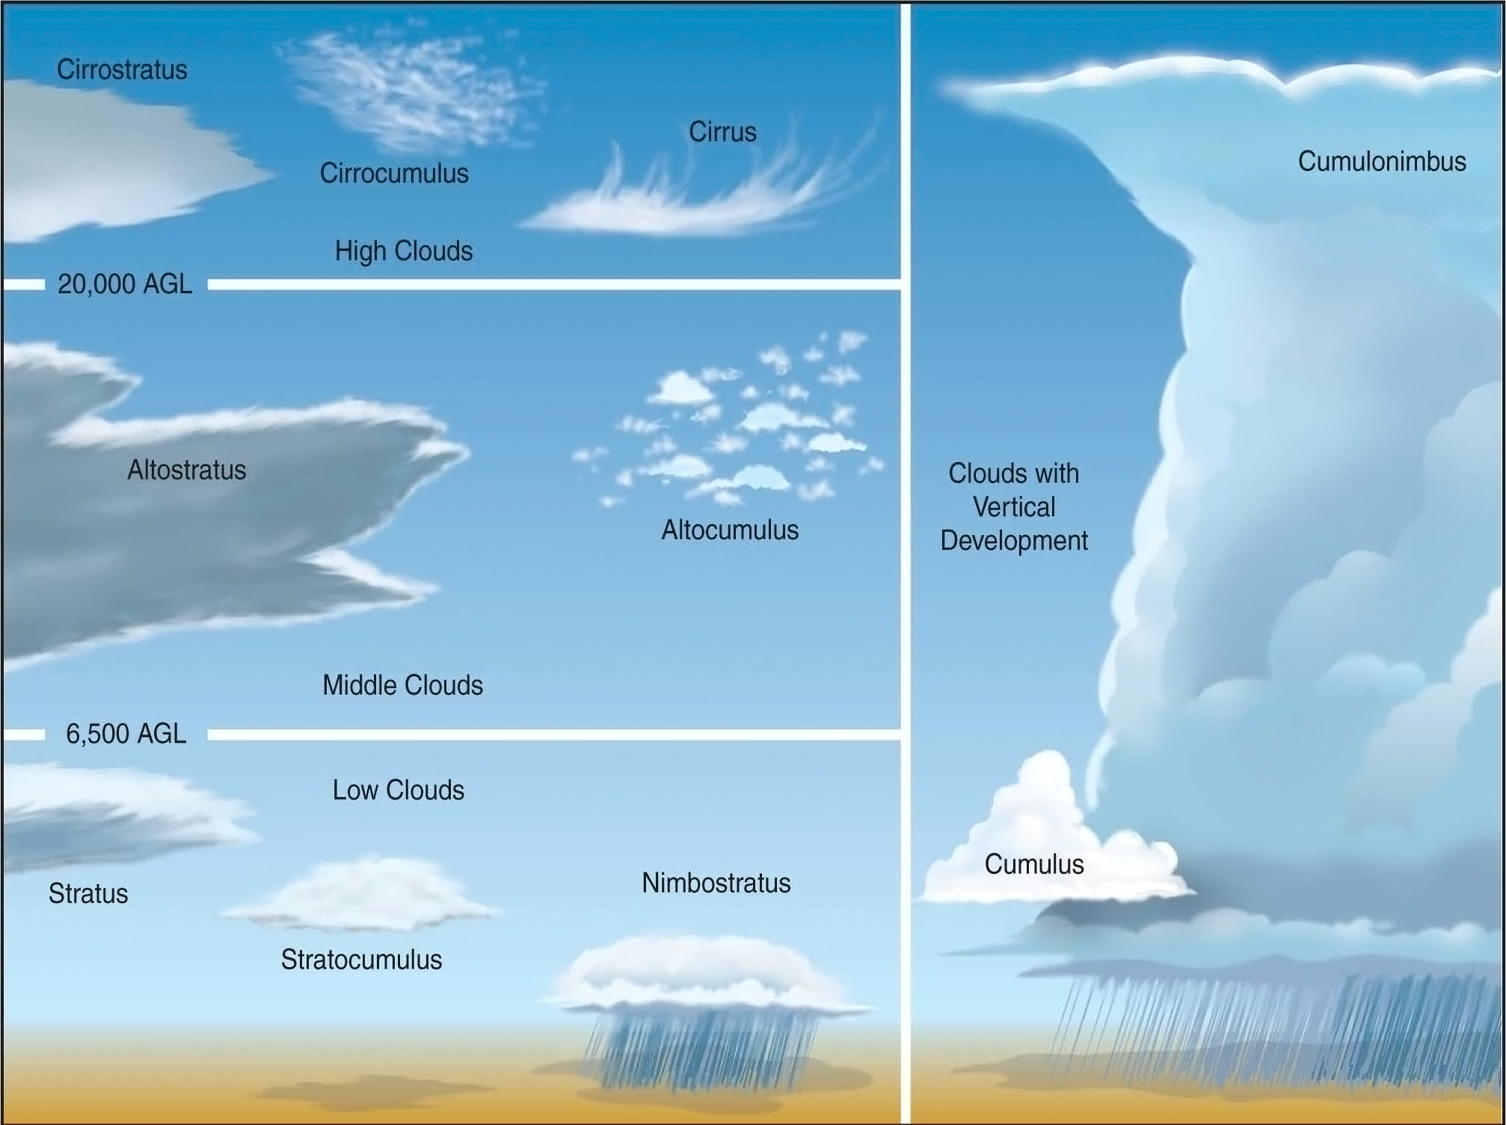 an overview of the classification of clouds by the world meteorological organization There's a new cloud in the sky — and citizens helped find it of clouds, the world meteorological organization announced new classification.